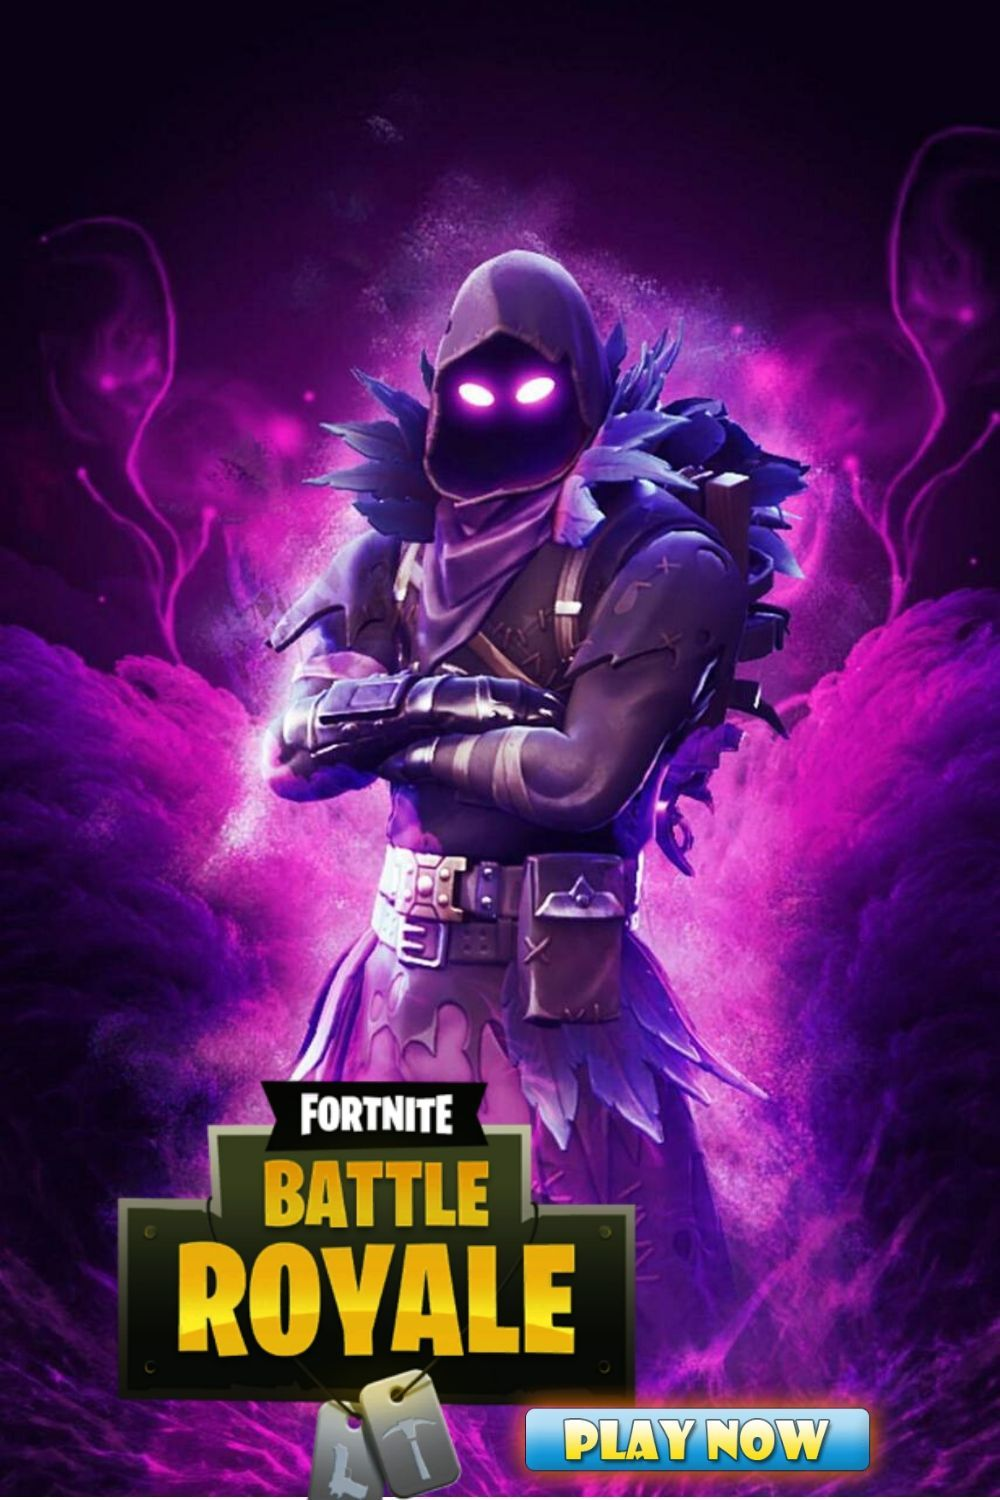 Do You Want To Play The Fortnite Battle Royale Game Don T Worry Just Click Below Link And Free Play The In 2020 Gaming Wallpapers Character Art Game Wallpaper Iphone